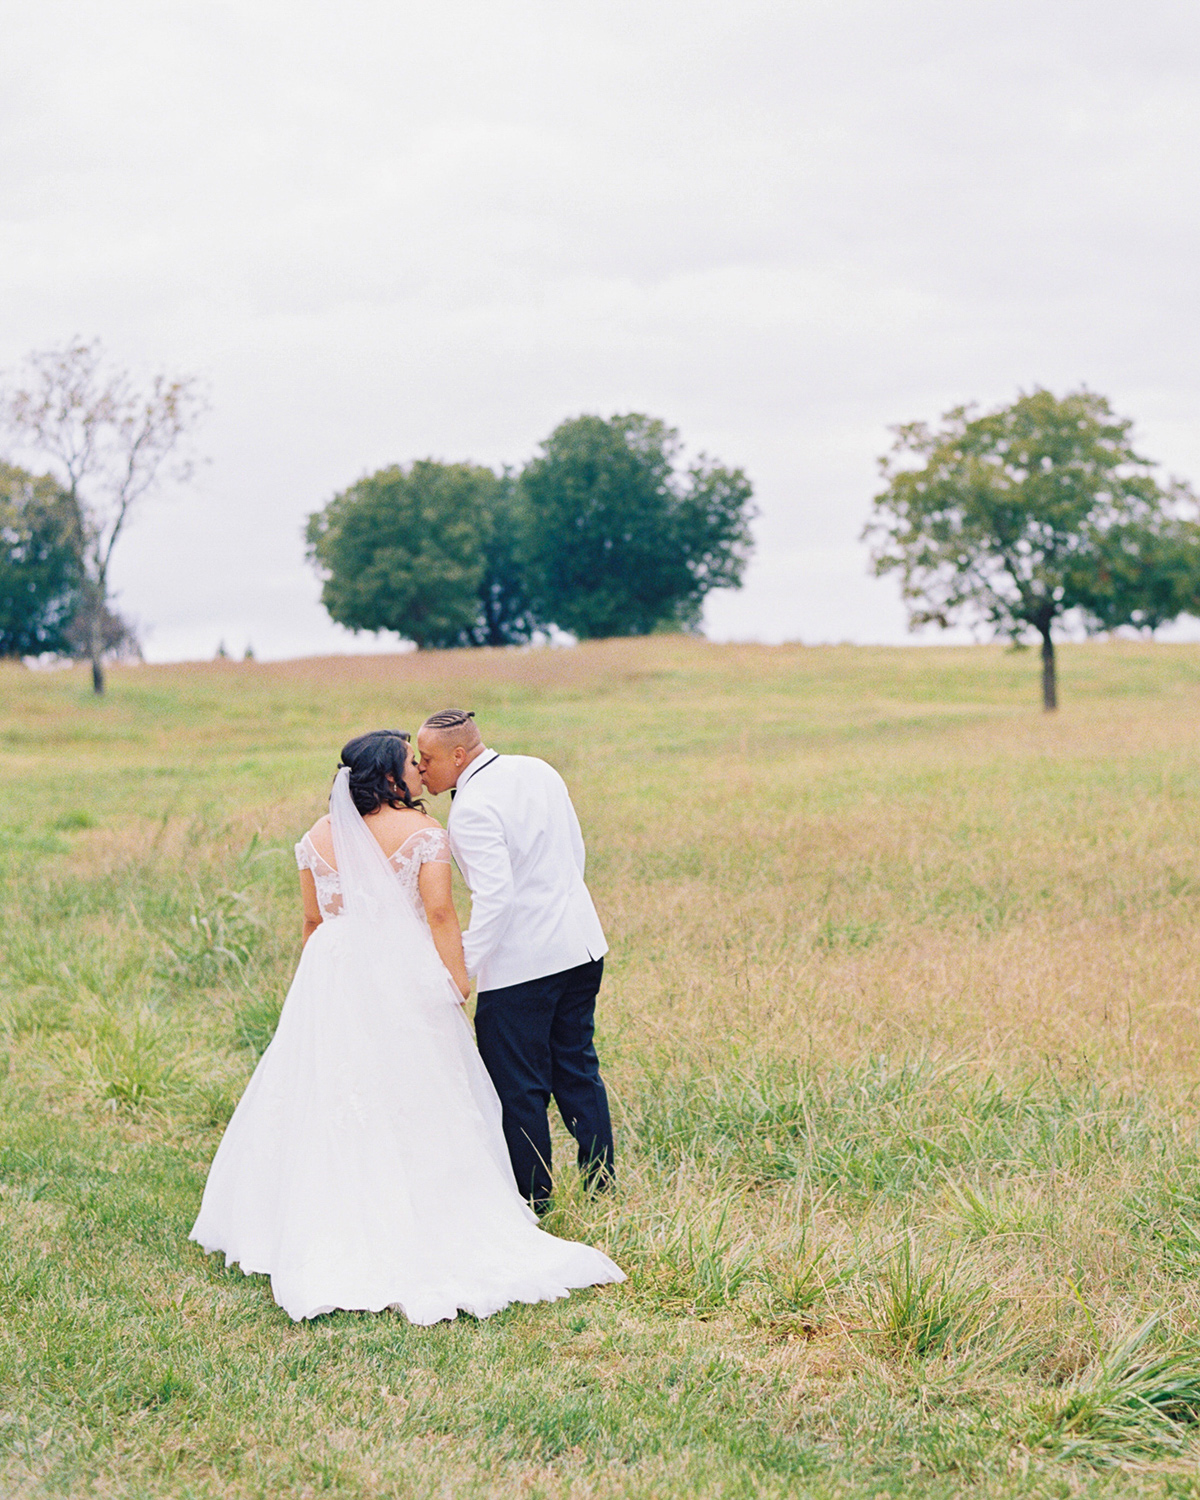 bride and groom kiss outside at farm wedding venue